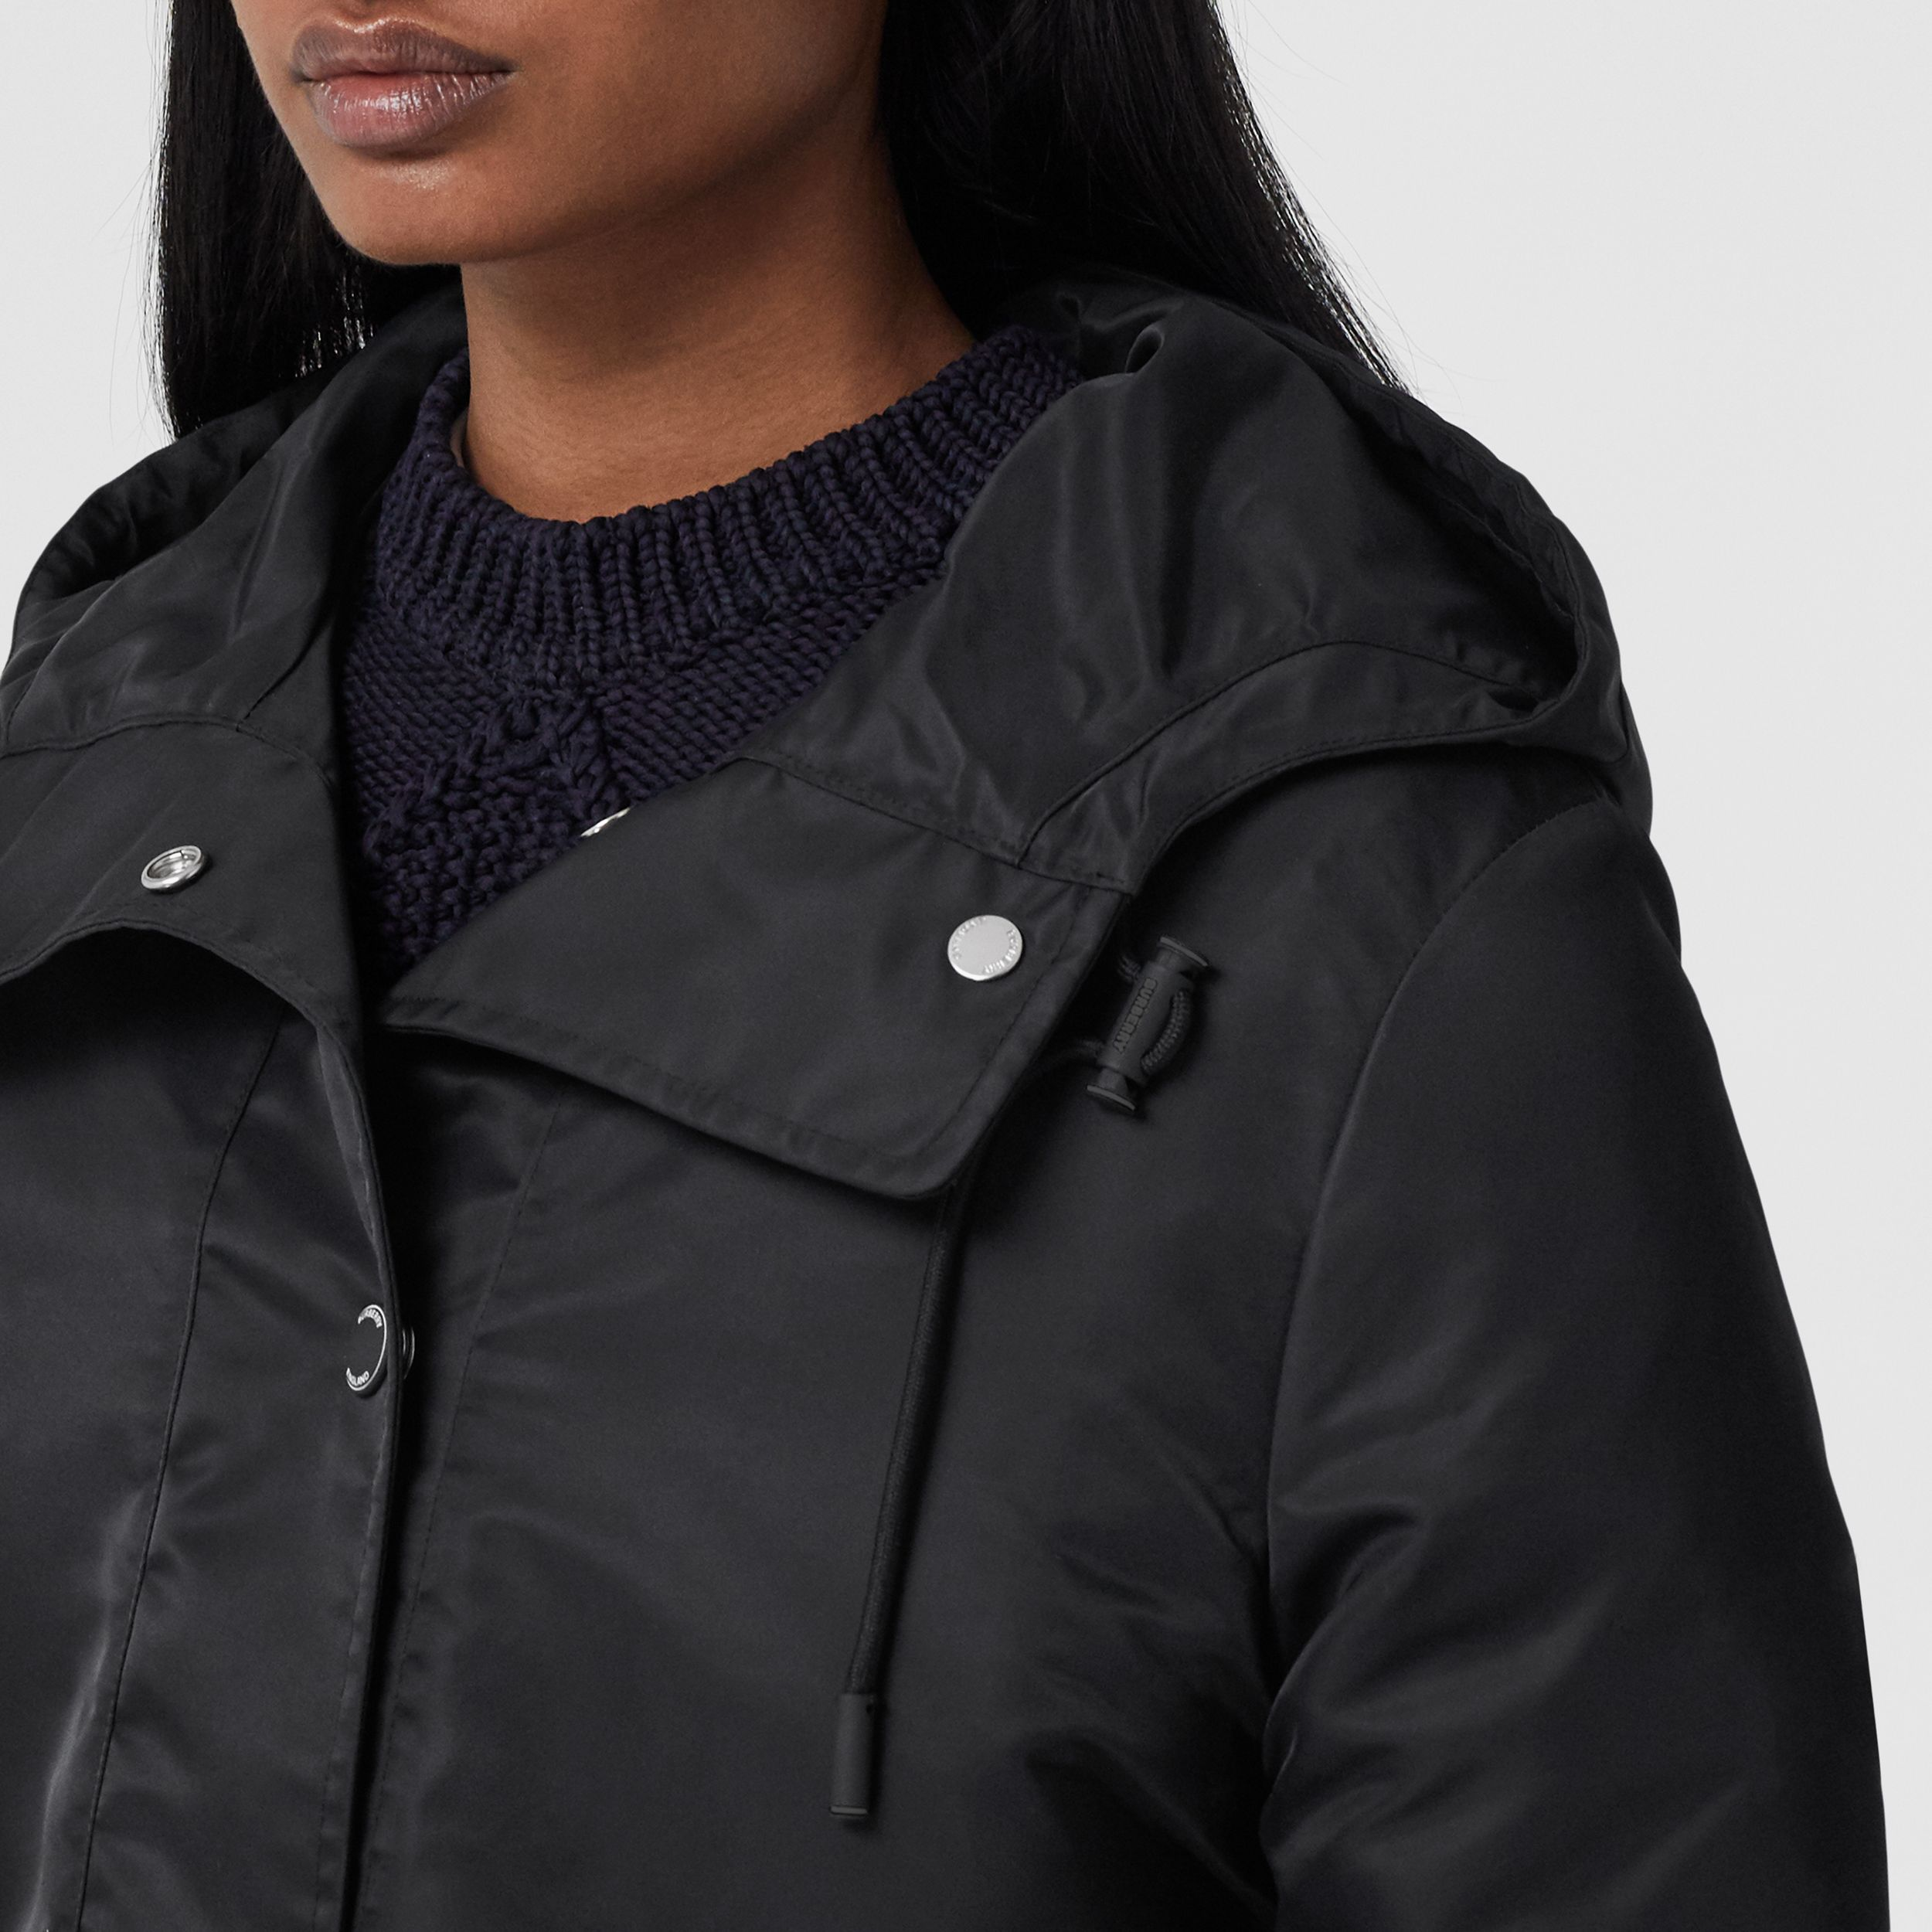 Horseferry Print Lightweight Hooded Parka in Black - Women | Burberry - 2